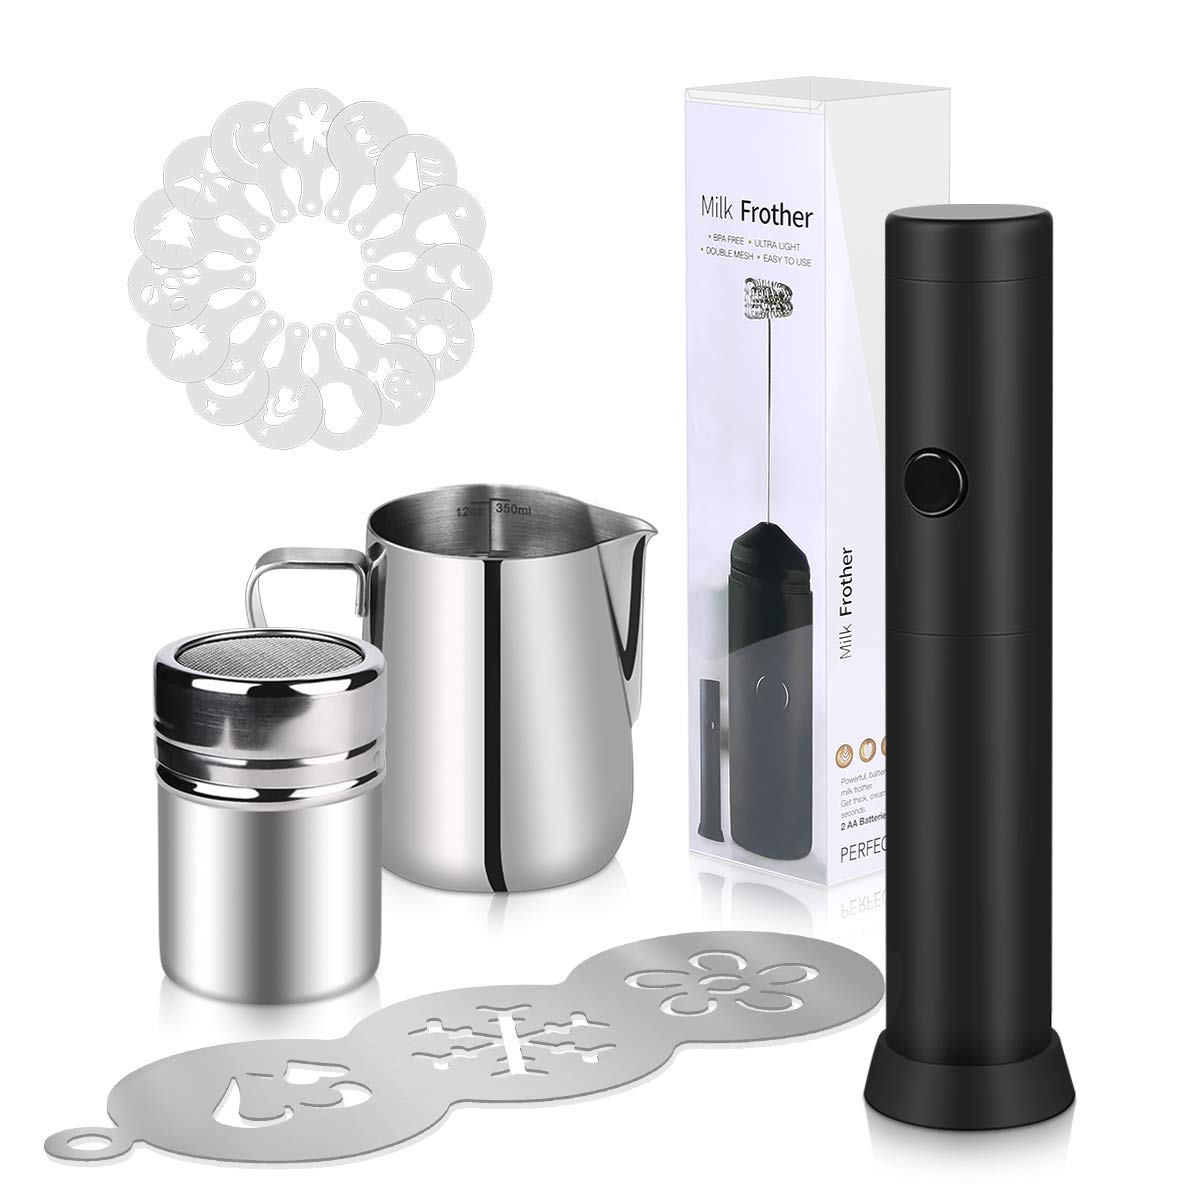 Aebitsry Milk Frother Coffee Art , Stainless Steel Scale Cup + Powder cone+ handheld milk frother + Stencils for Coffee, Latte Cappuccino, Hot Chocolate stainless steel coffee stencil, and 16 Pieces Stencils Art (Foam Maker Set 20PCS)